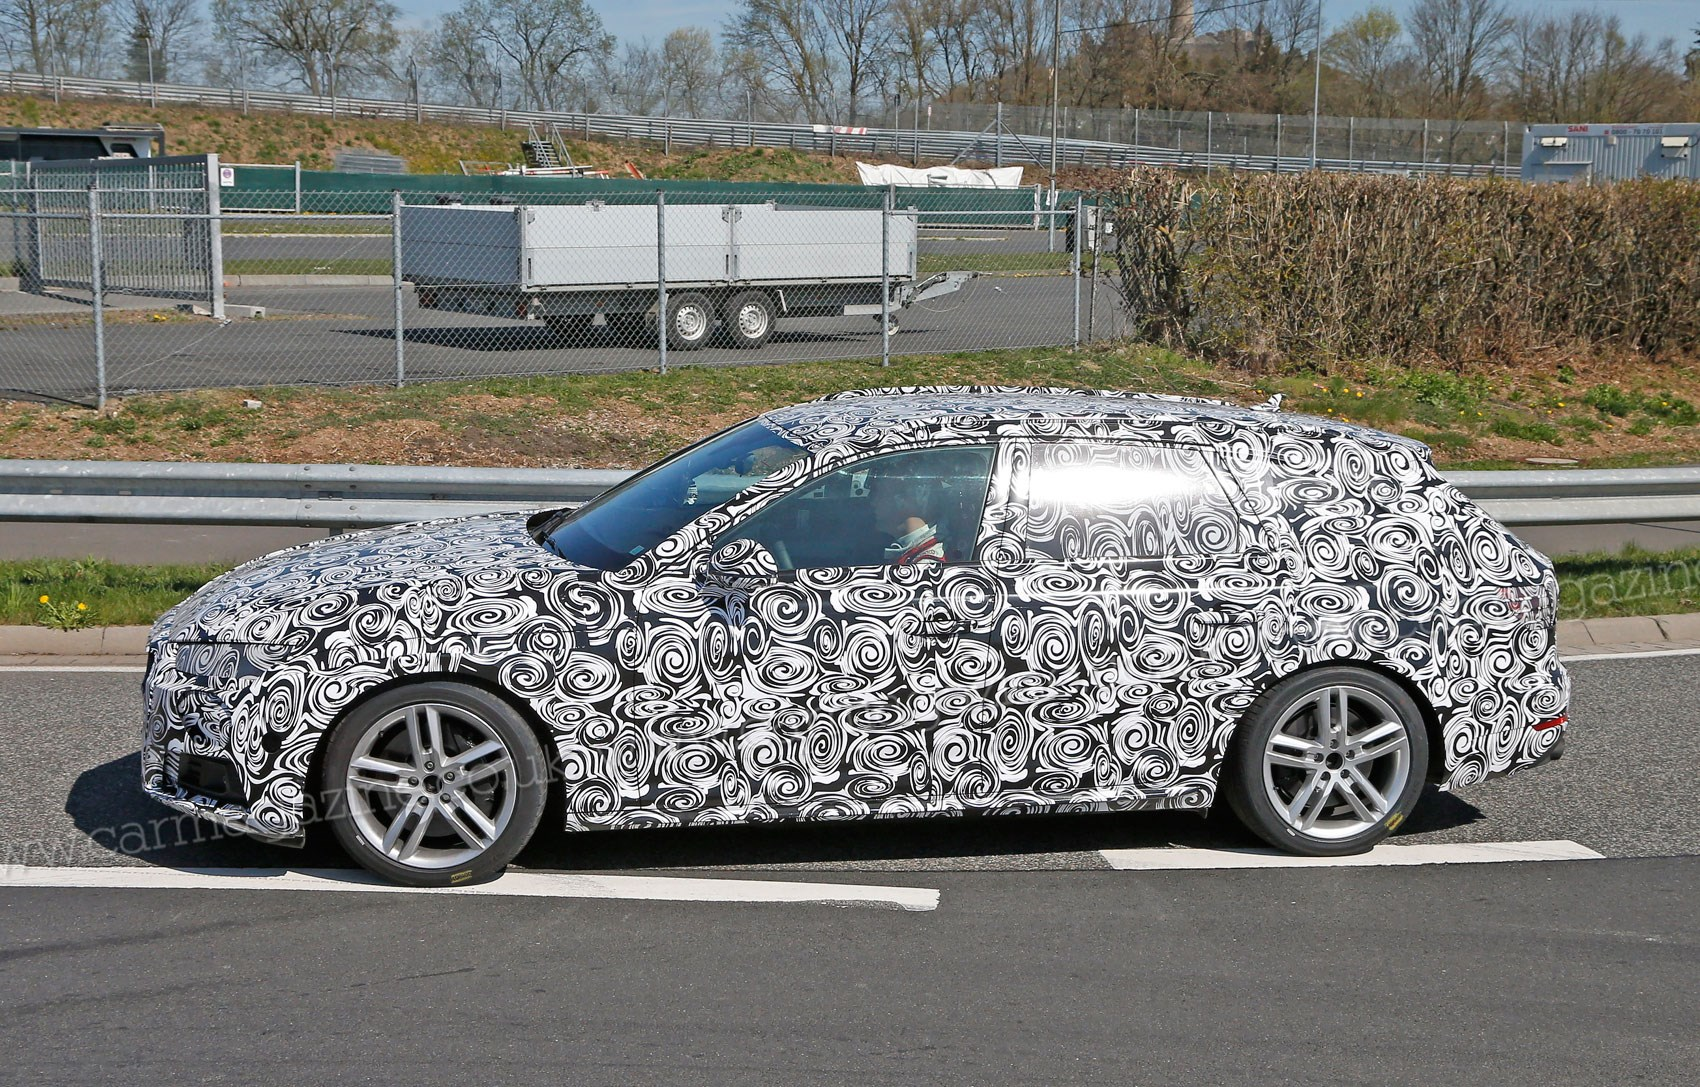 audi s4 avant 2016 spyshots 340bhp for future fast. Black Bedroom Furniture Sets. Home Design Ideas